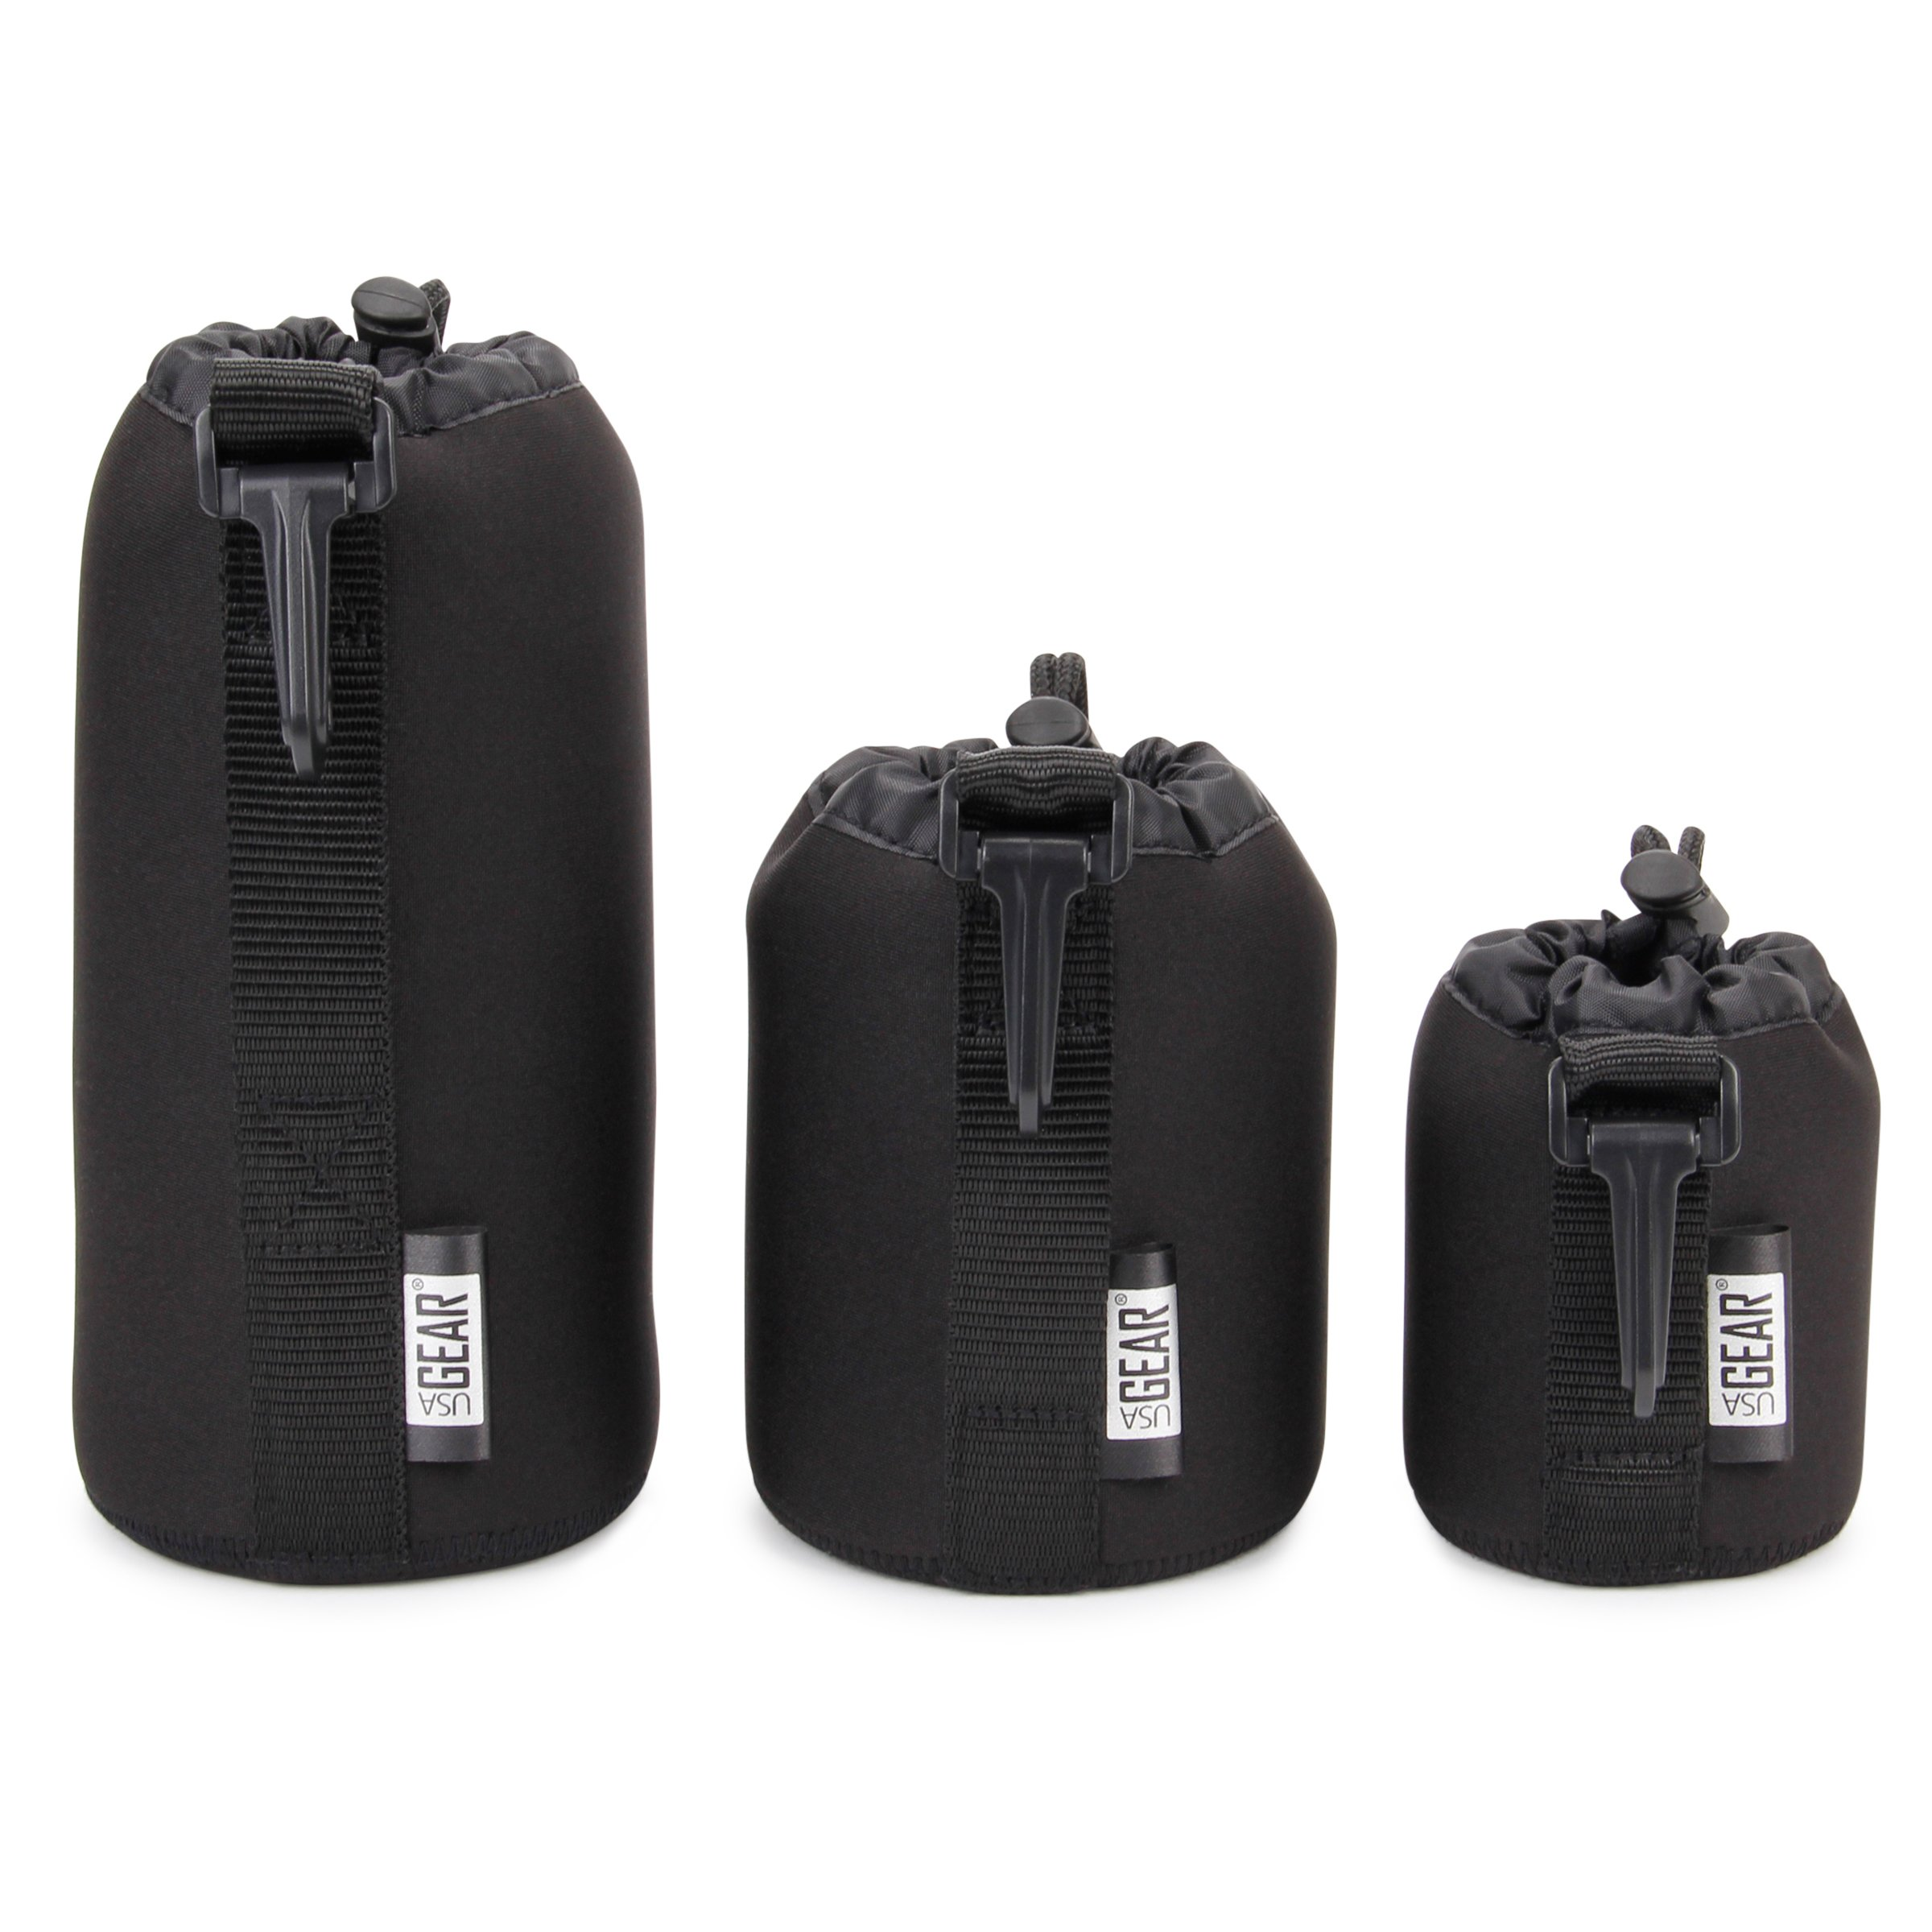 USA GEAR FlexARMOR Protective Neoprene Lens Case Pouch Set 3-Pack (Black) - Small, Medium and Large Cases Hold Lenses up to 70-300mm with Drawstring Opening, Attached Clip, Reinforced Belt Loop